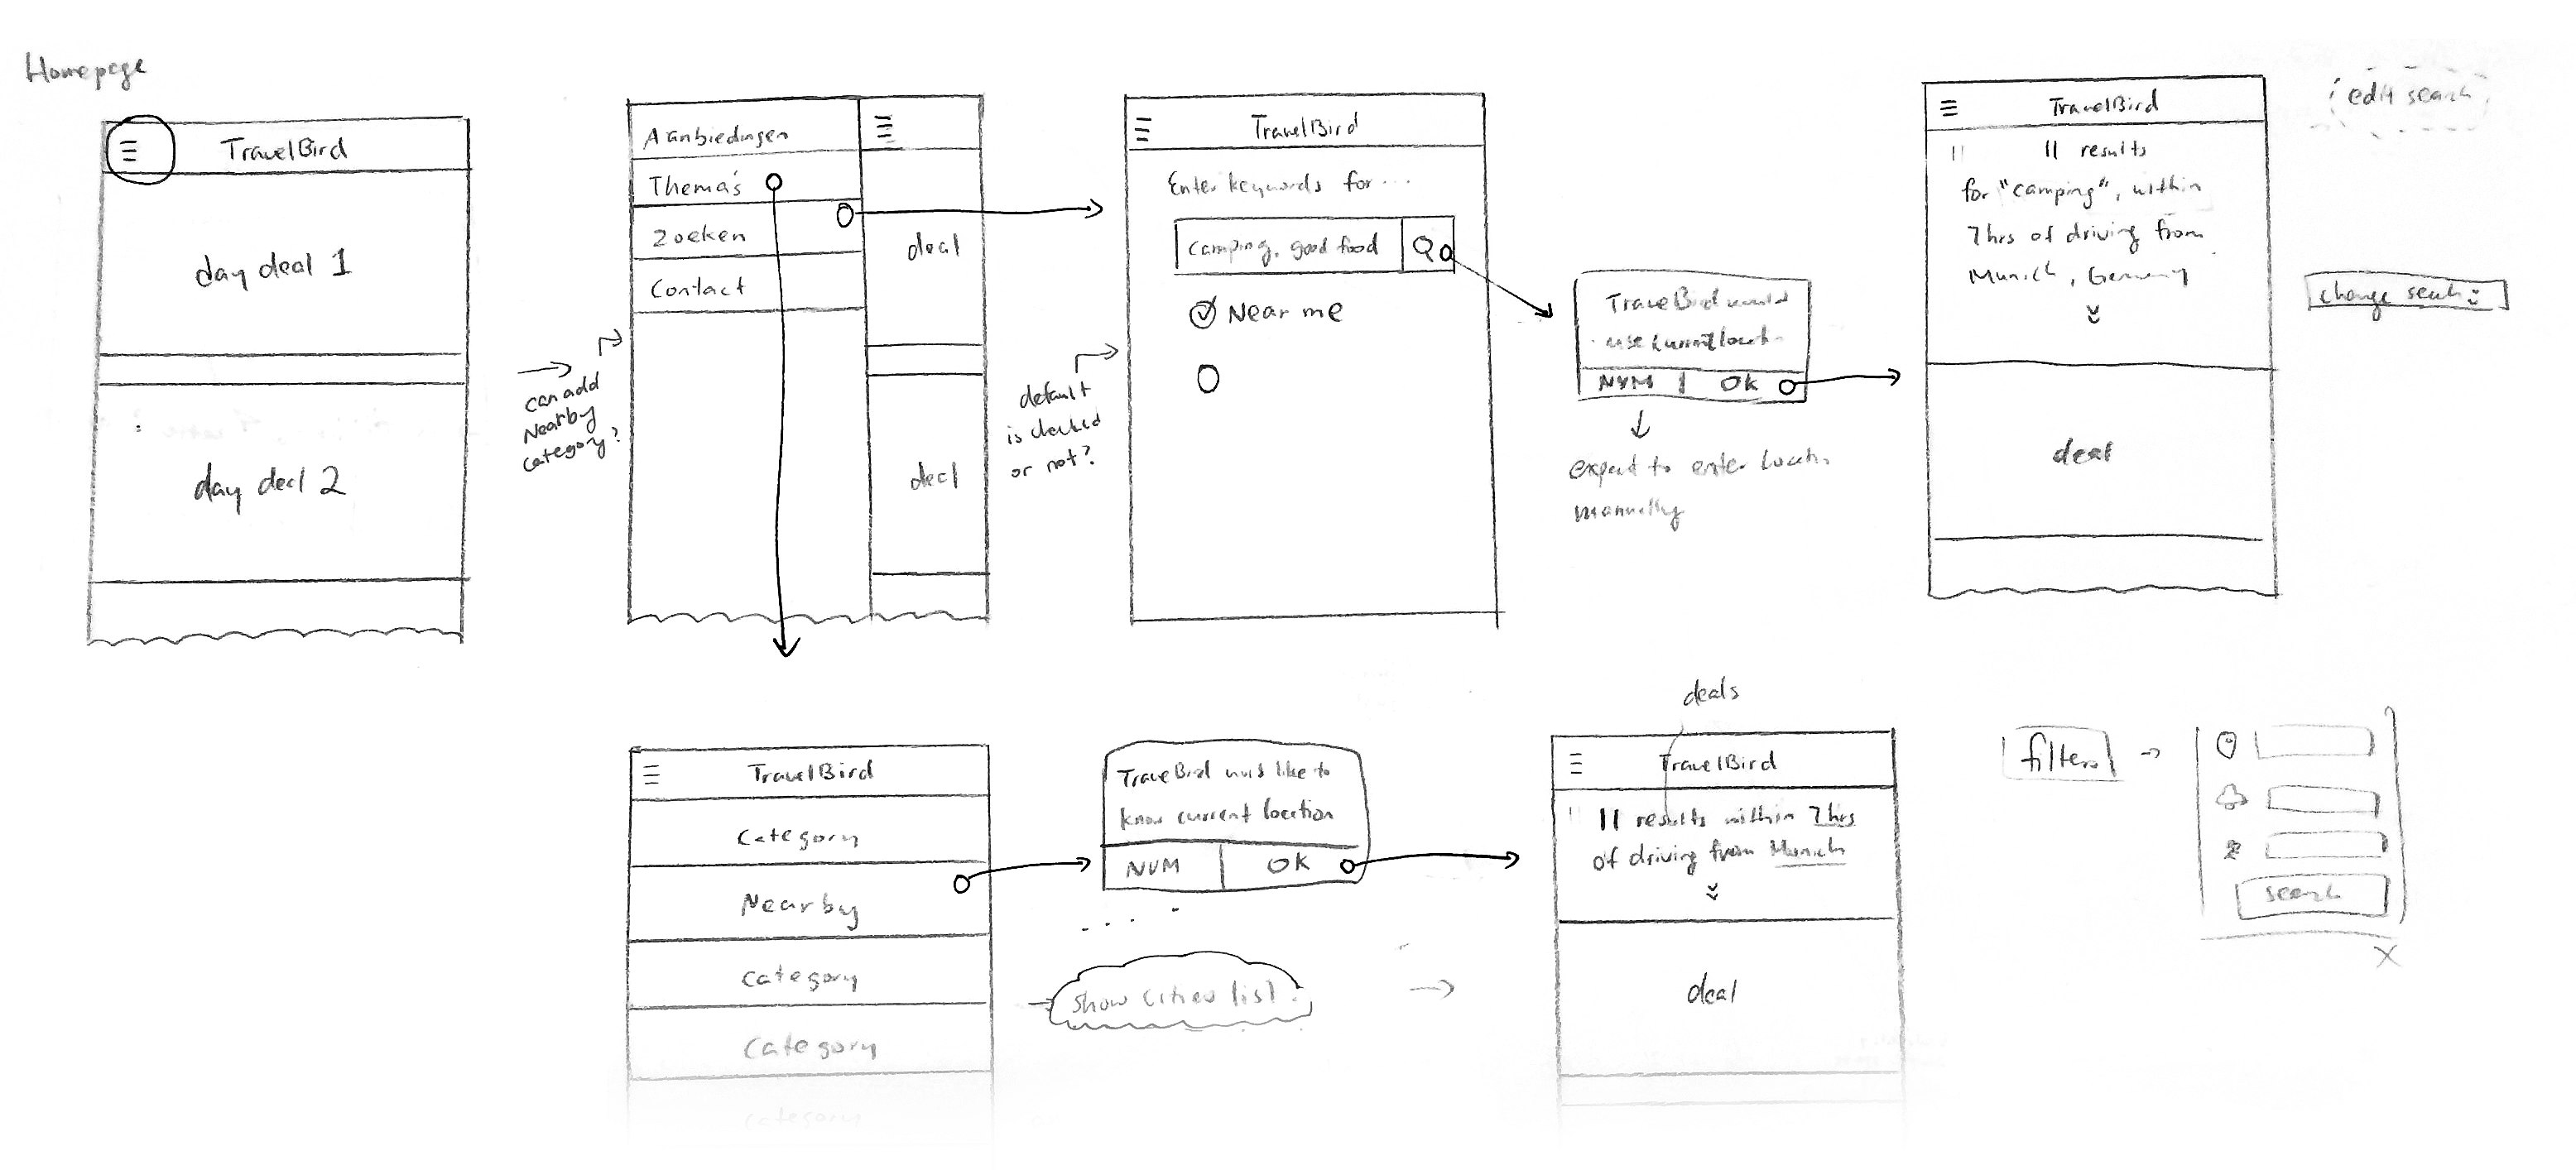 Wireframe sketches by UX designer Amsterdam